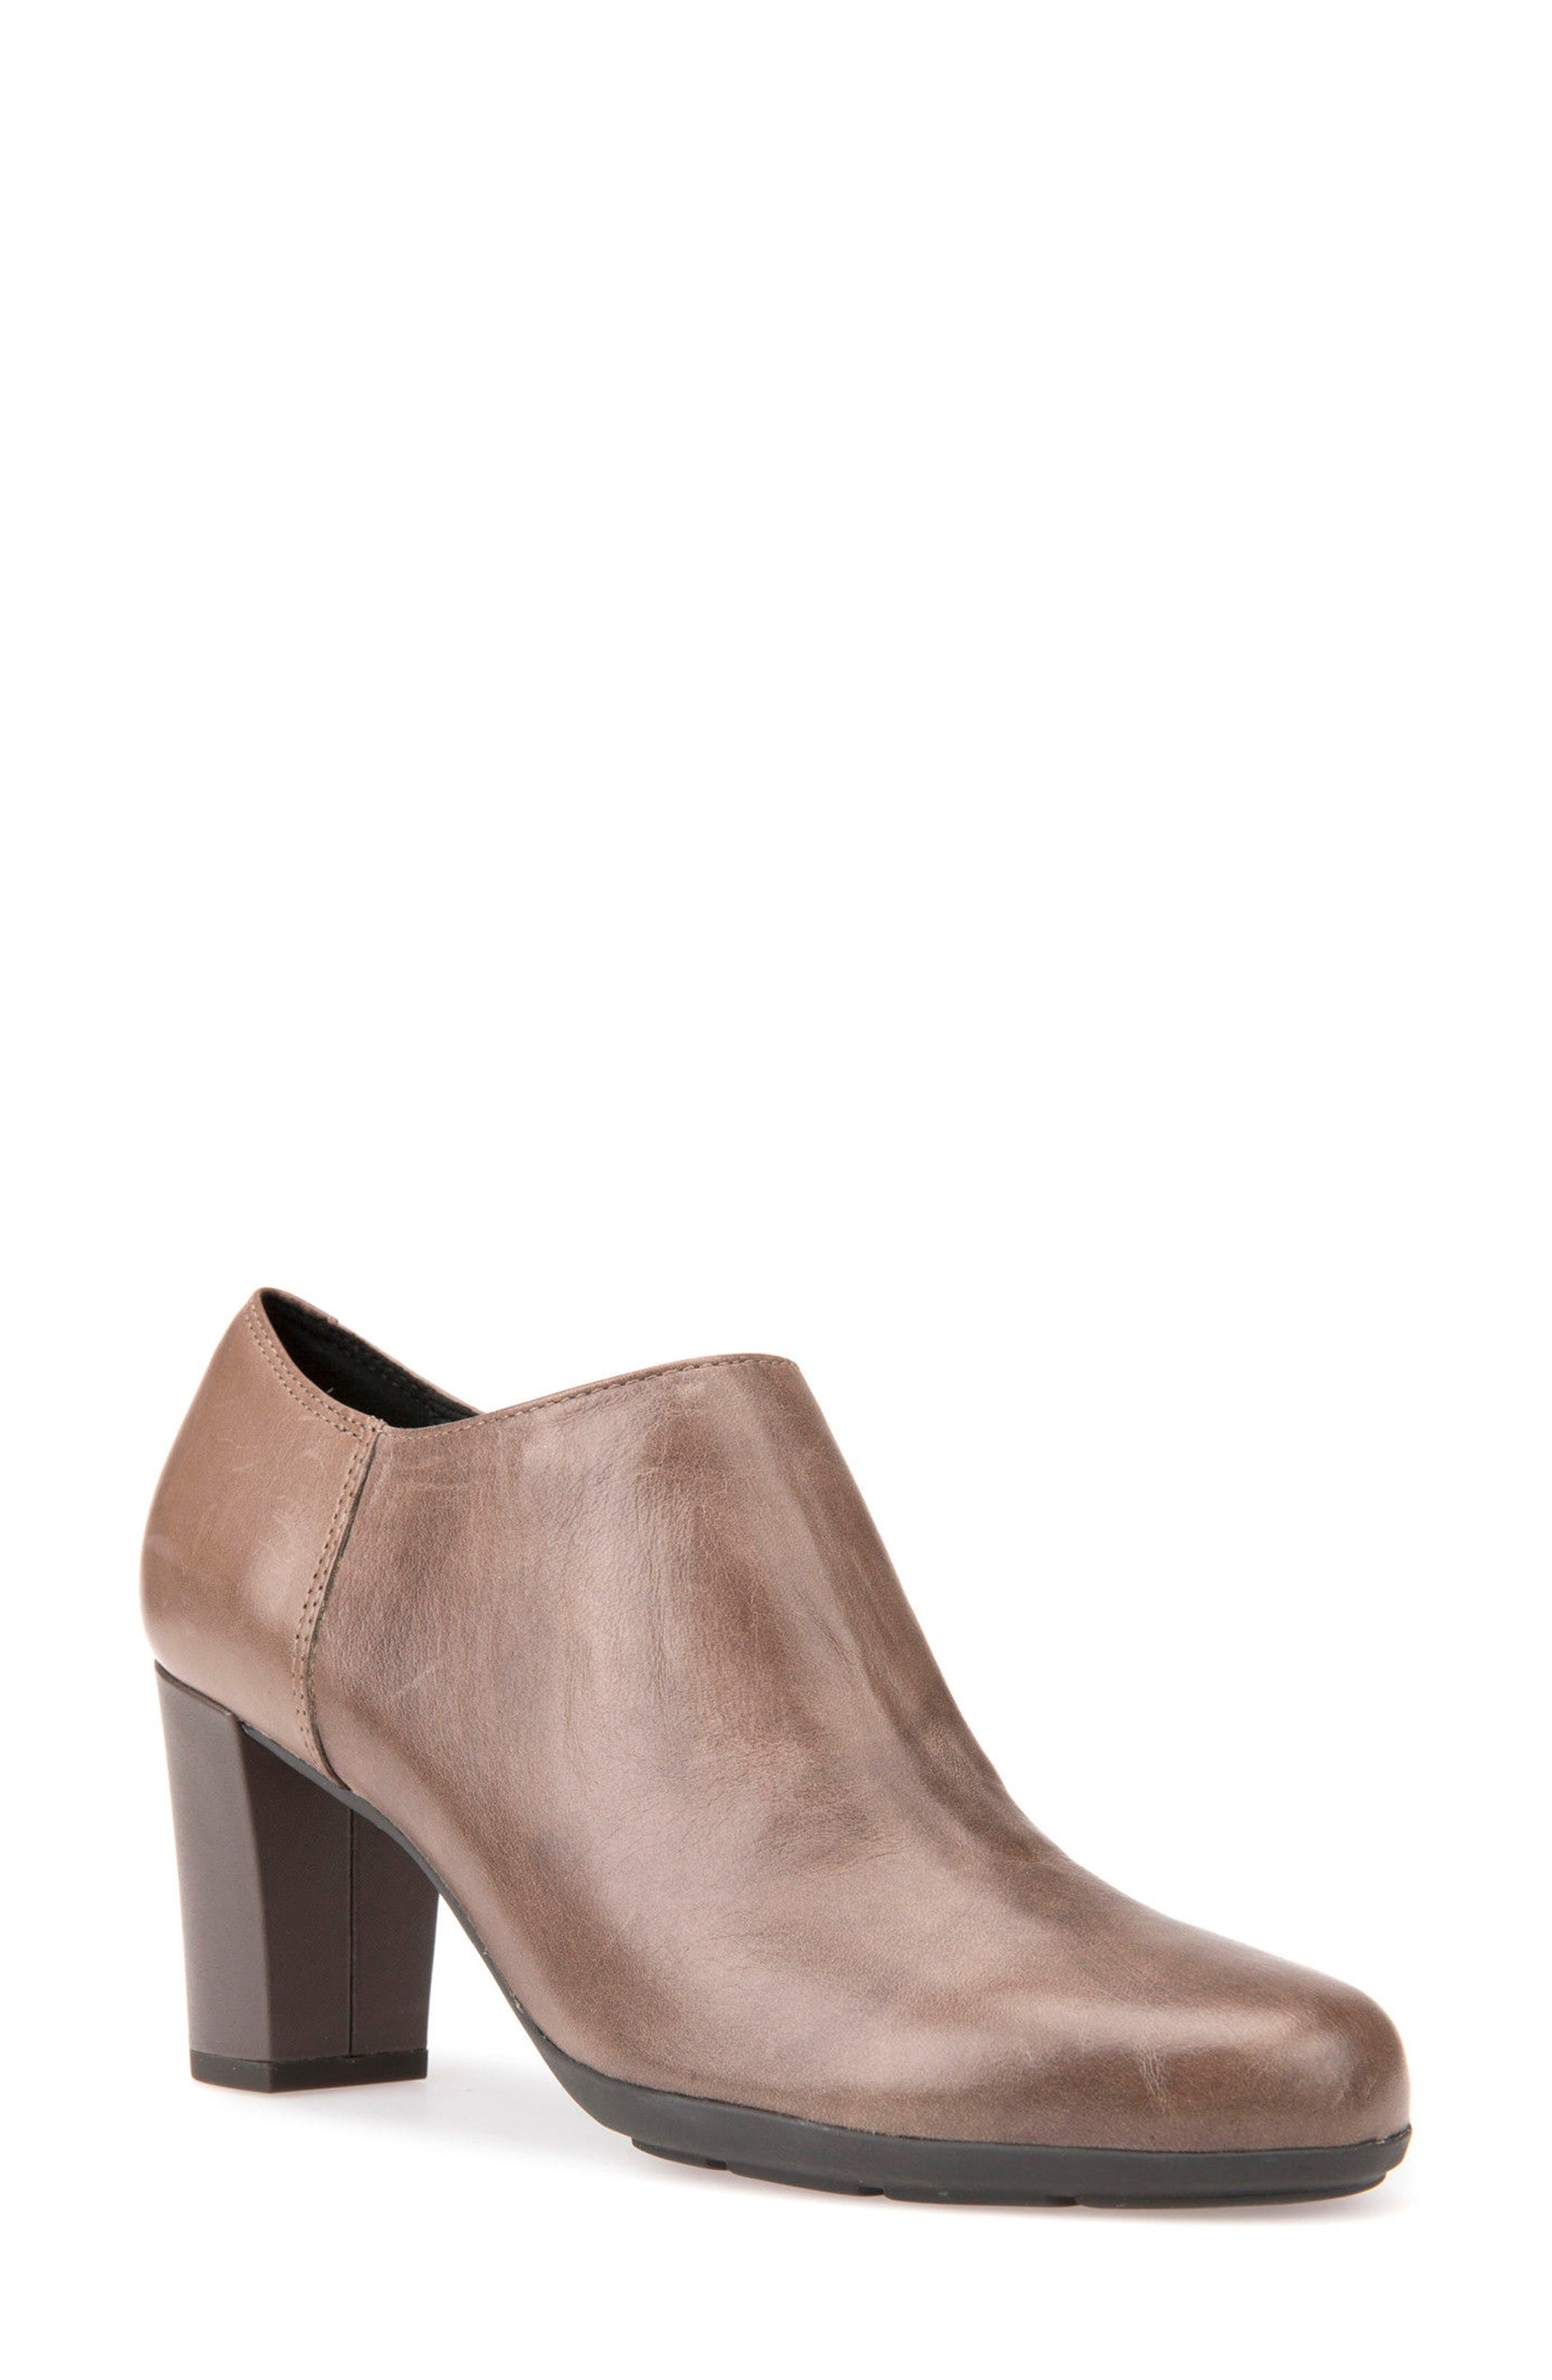 Annya Bootie,                         Main,                         color, Taupe Leather